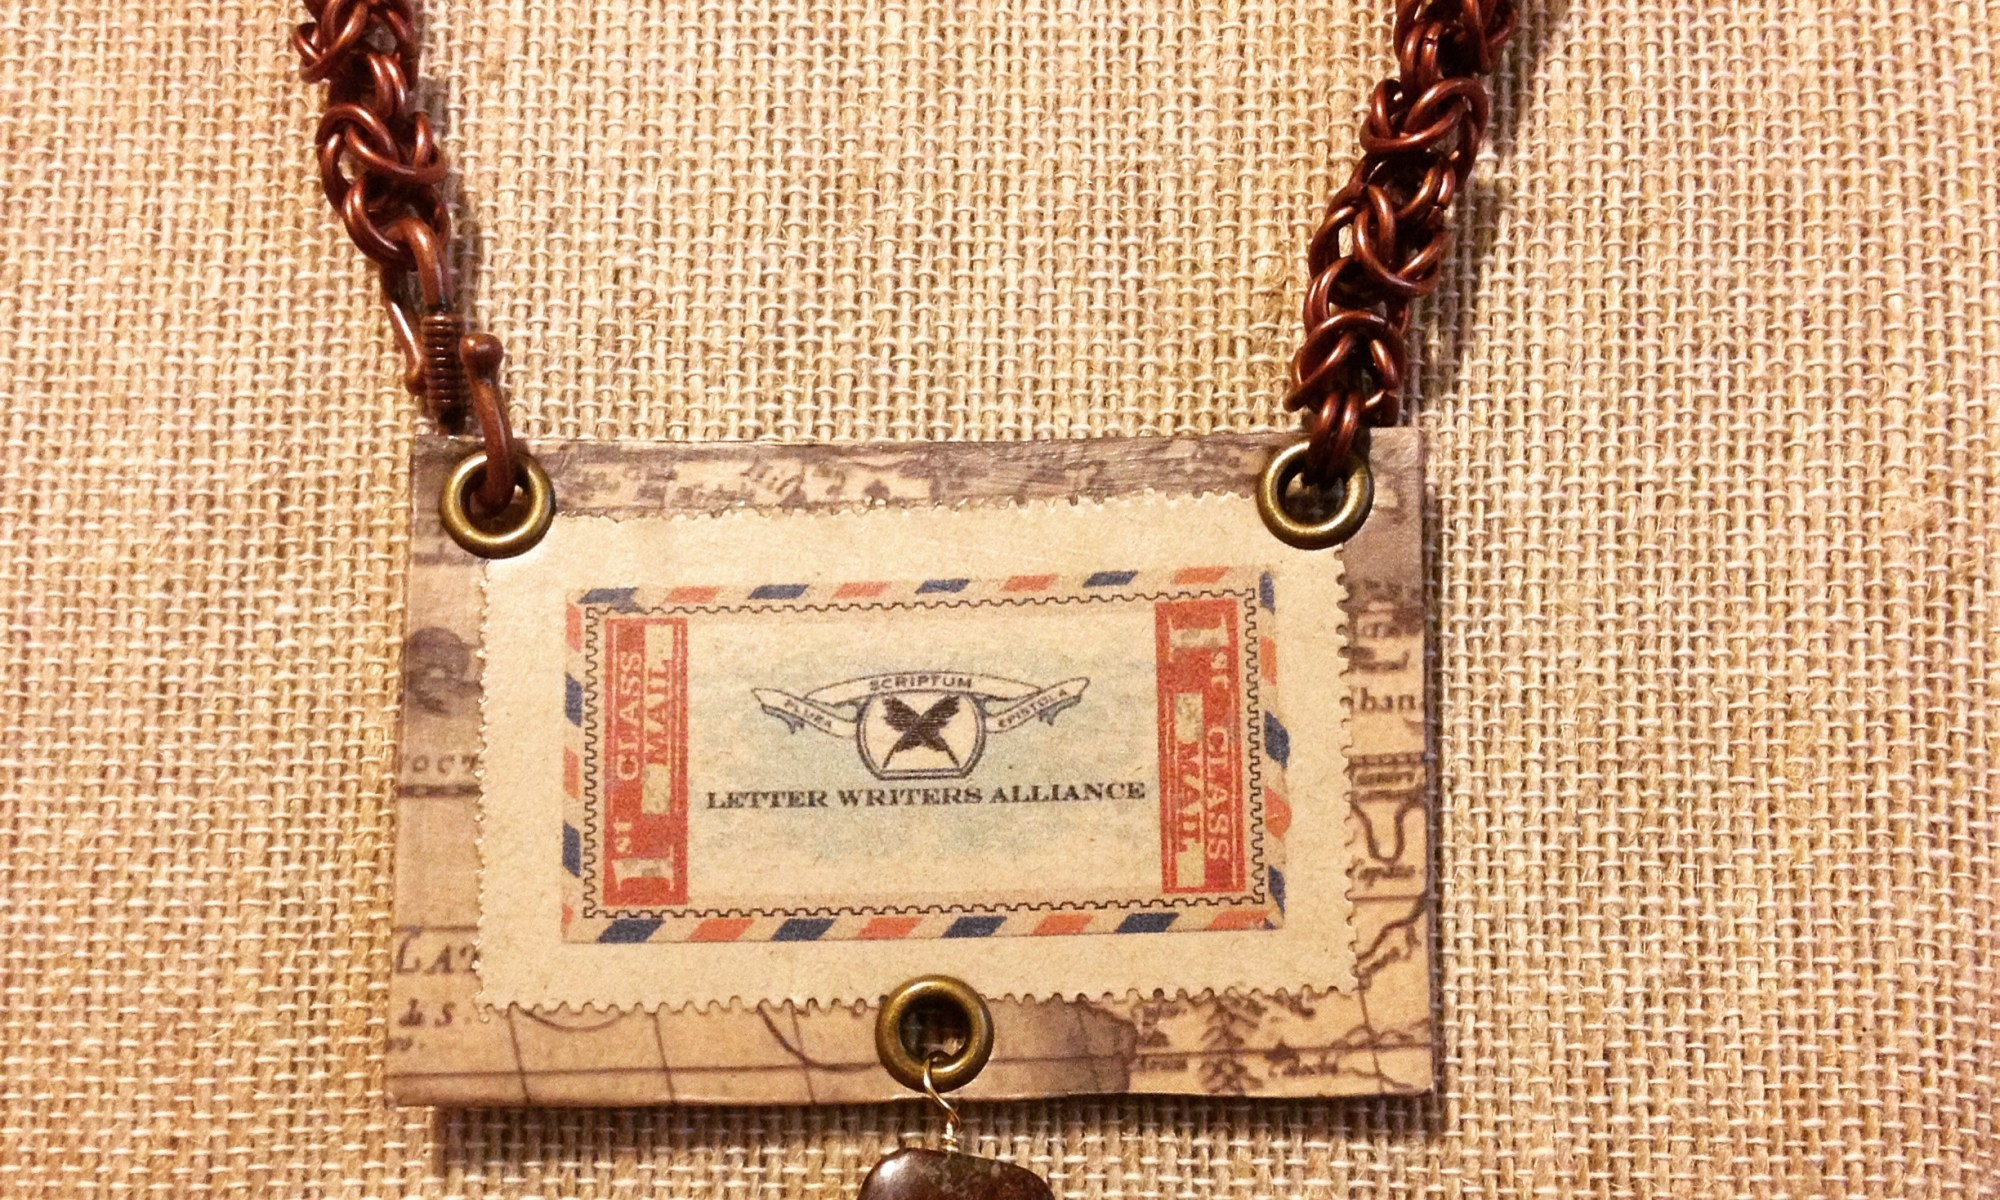 Letter Writers Alliance stap necklace